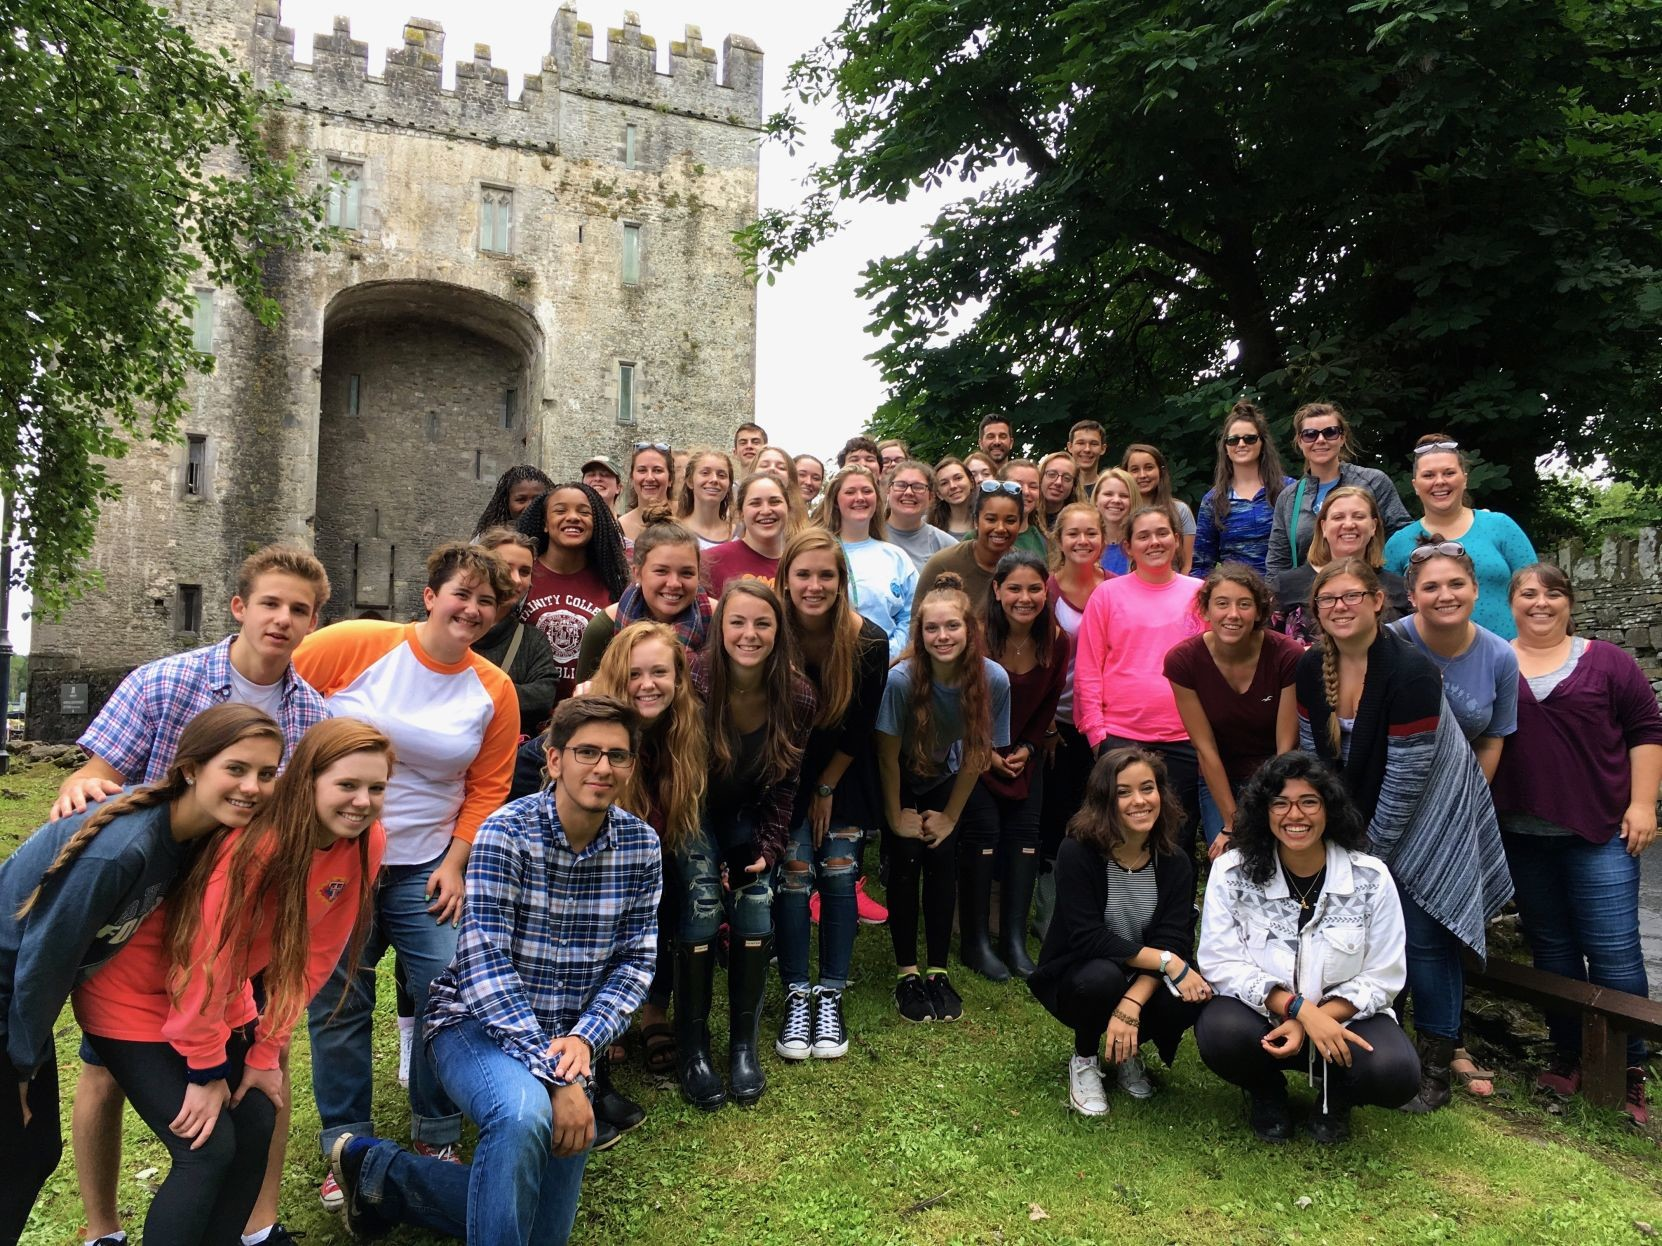 In July 2016, local students toured Ireland on an educationally-motivated trip.